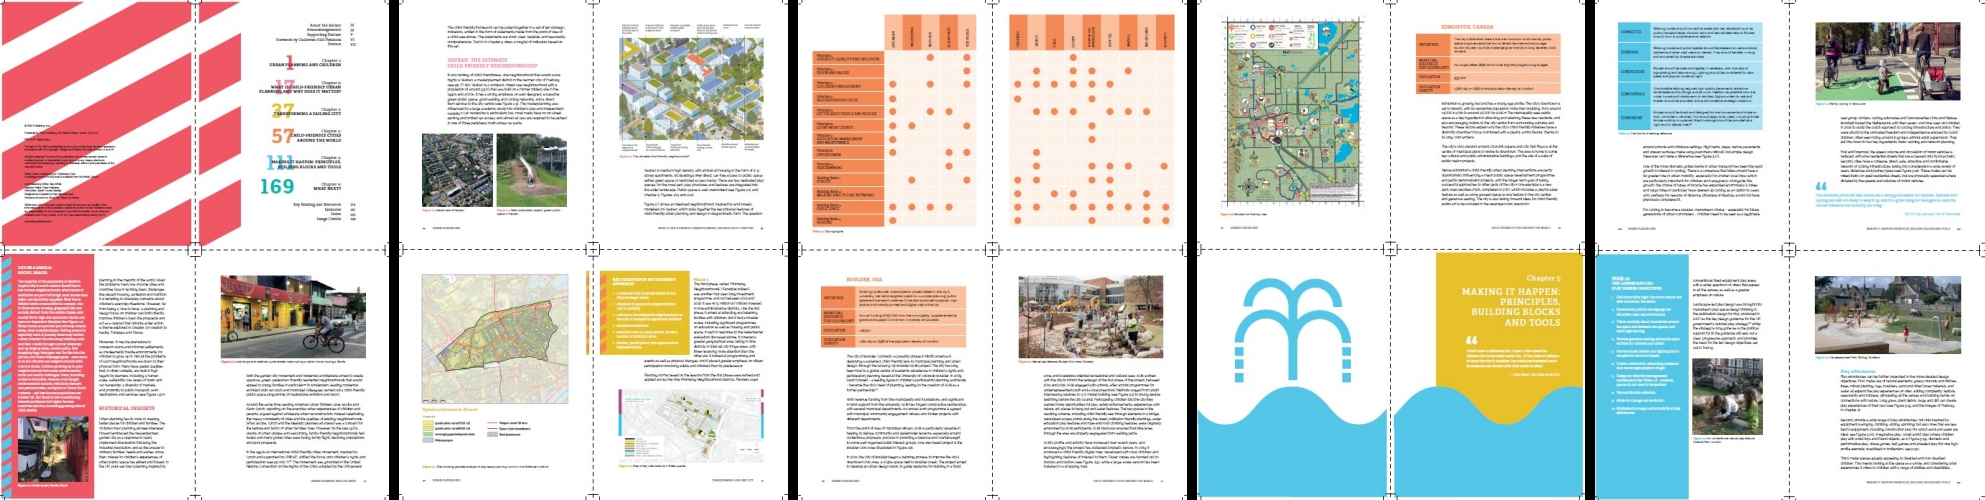 10 2-page spreads from Urban Playground book